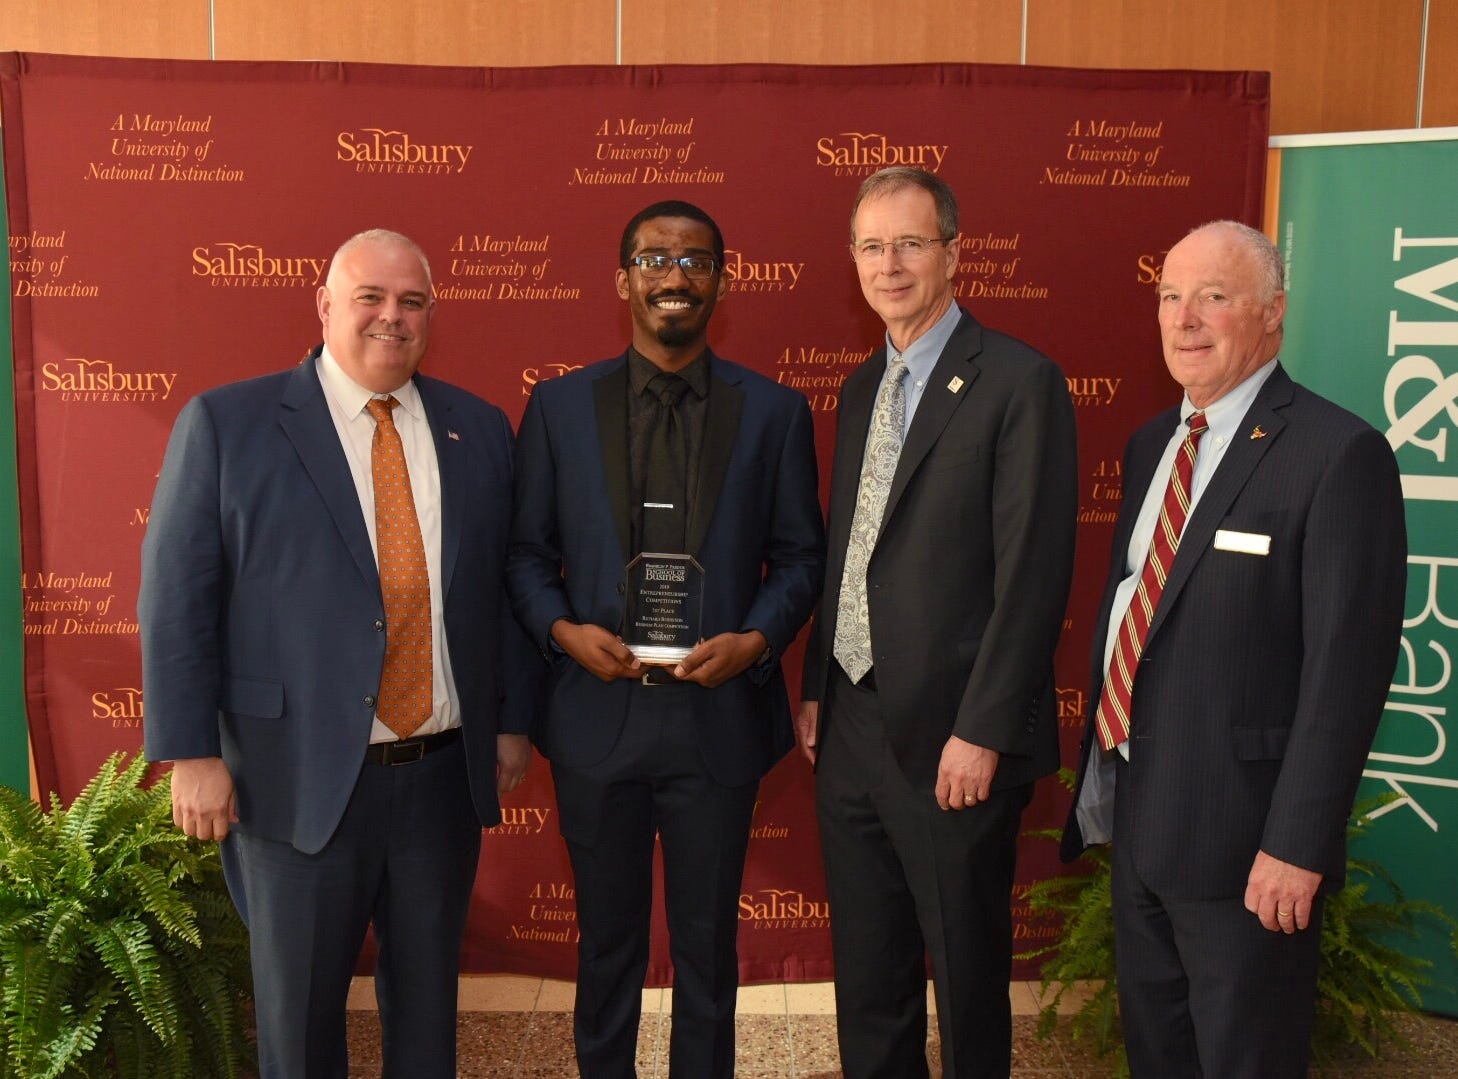 Kevin Bernstein, Vice President of LWRC International, LLC, Cameron Kane-SU's Bernstein Achievement Award for Excellence Valkyrie Software Solutions , Salisbury University President Charles Wight and William Burke, SU executive director for economic development and director of the Entrepreneurship Competitions.